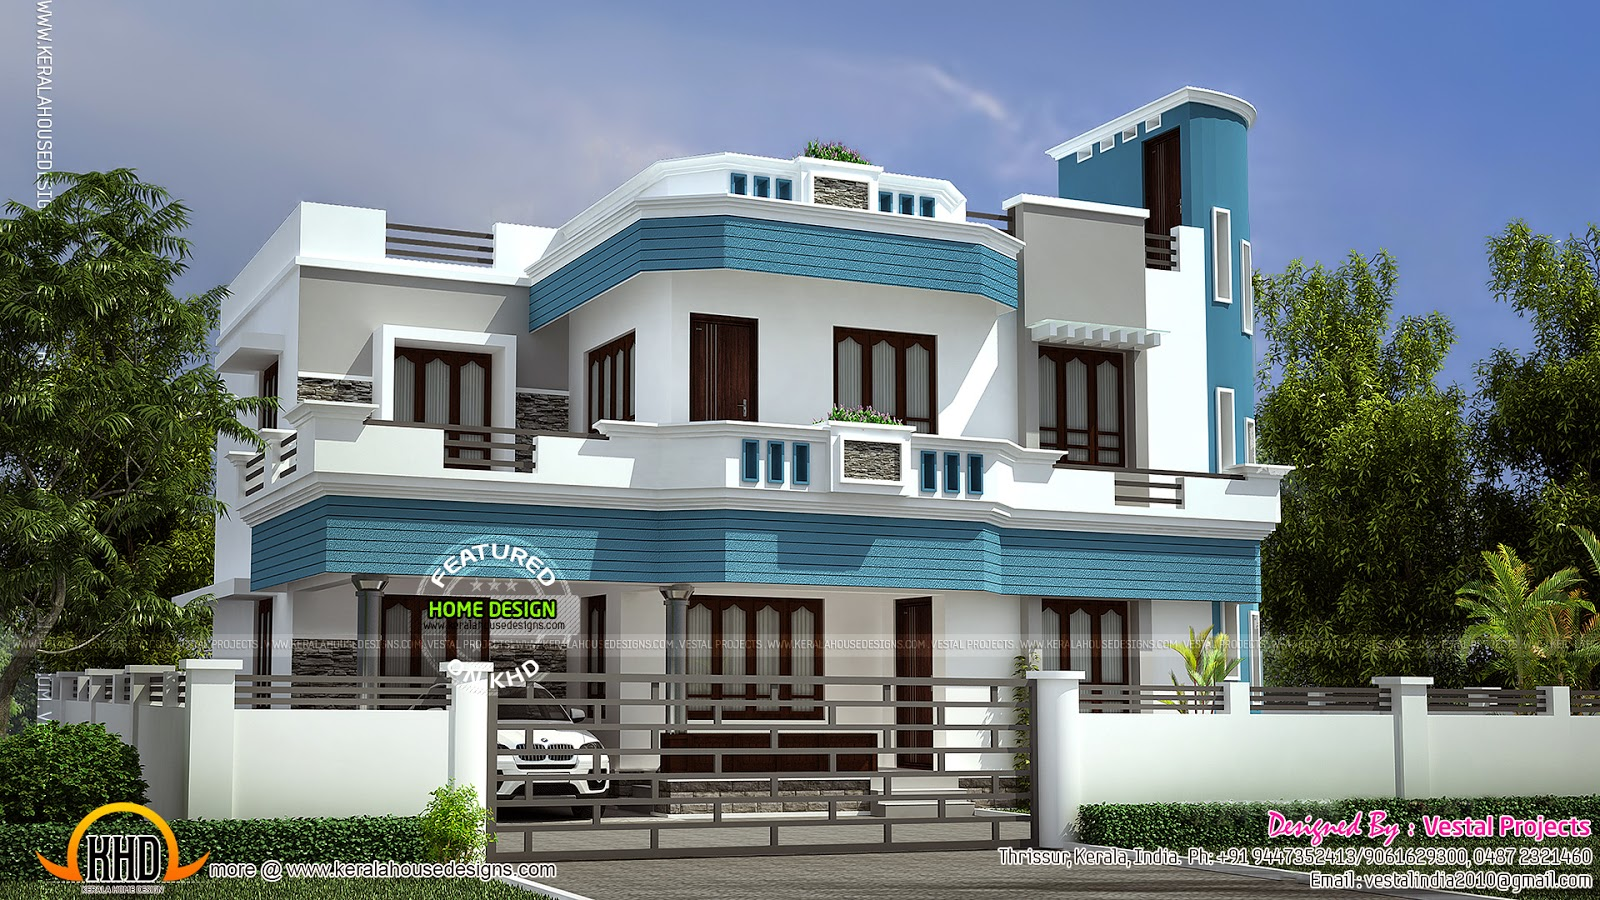 Awesome house by vestal projects kerala home design and for Awesome house blueprints